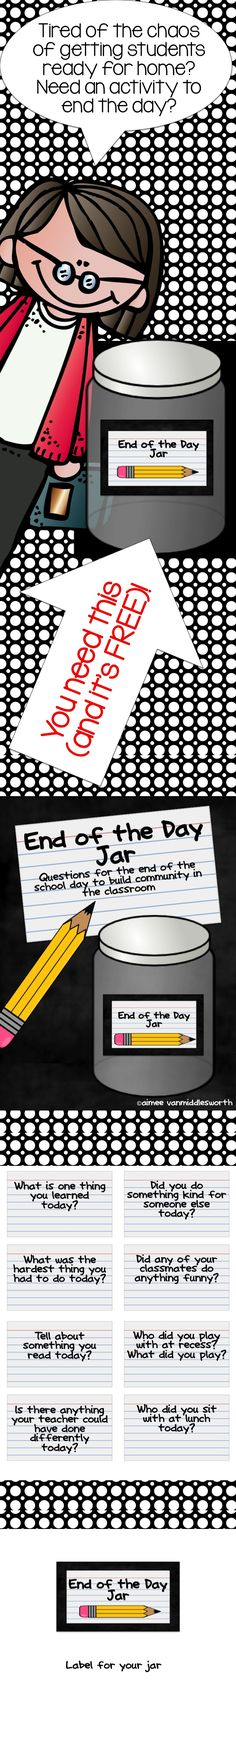 FREE!!  The End of the Jar is a great way to end the school day and wonderful for classroom management! (Although it seems to be intended for elementary school, many of these ideas could also be used for upper-grade exit cards!)